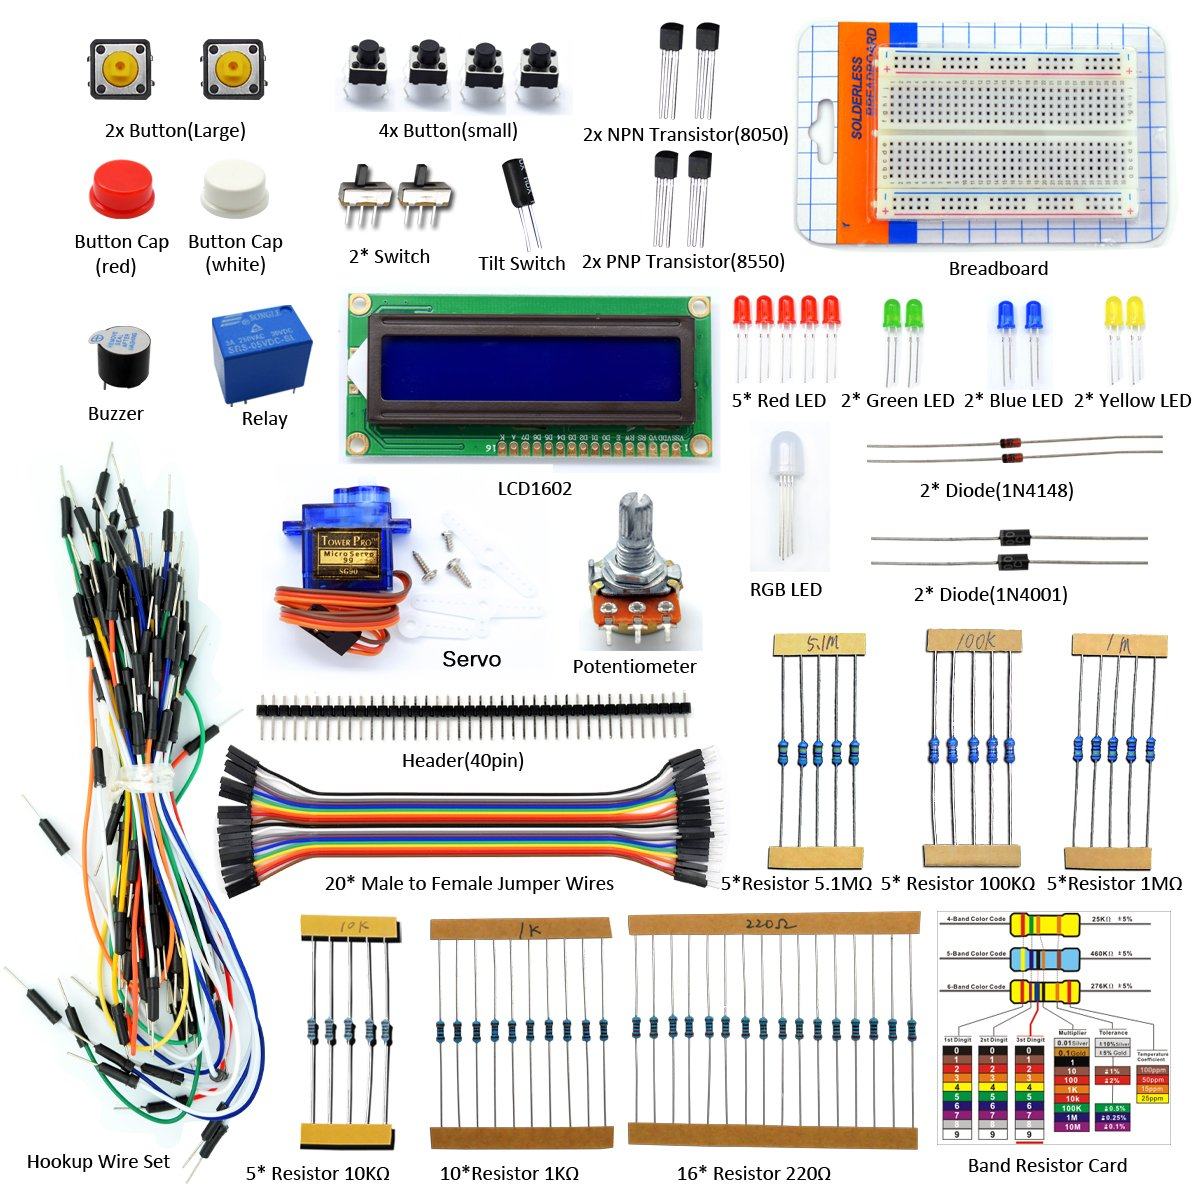 Adeept Project 1602 Lcd Starter Kit For Raspberry Pi 3 2 Model B Wiringpi Numbering Servo Relay Lcd1602 Beginner With Pdf Guidebook User